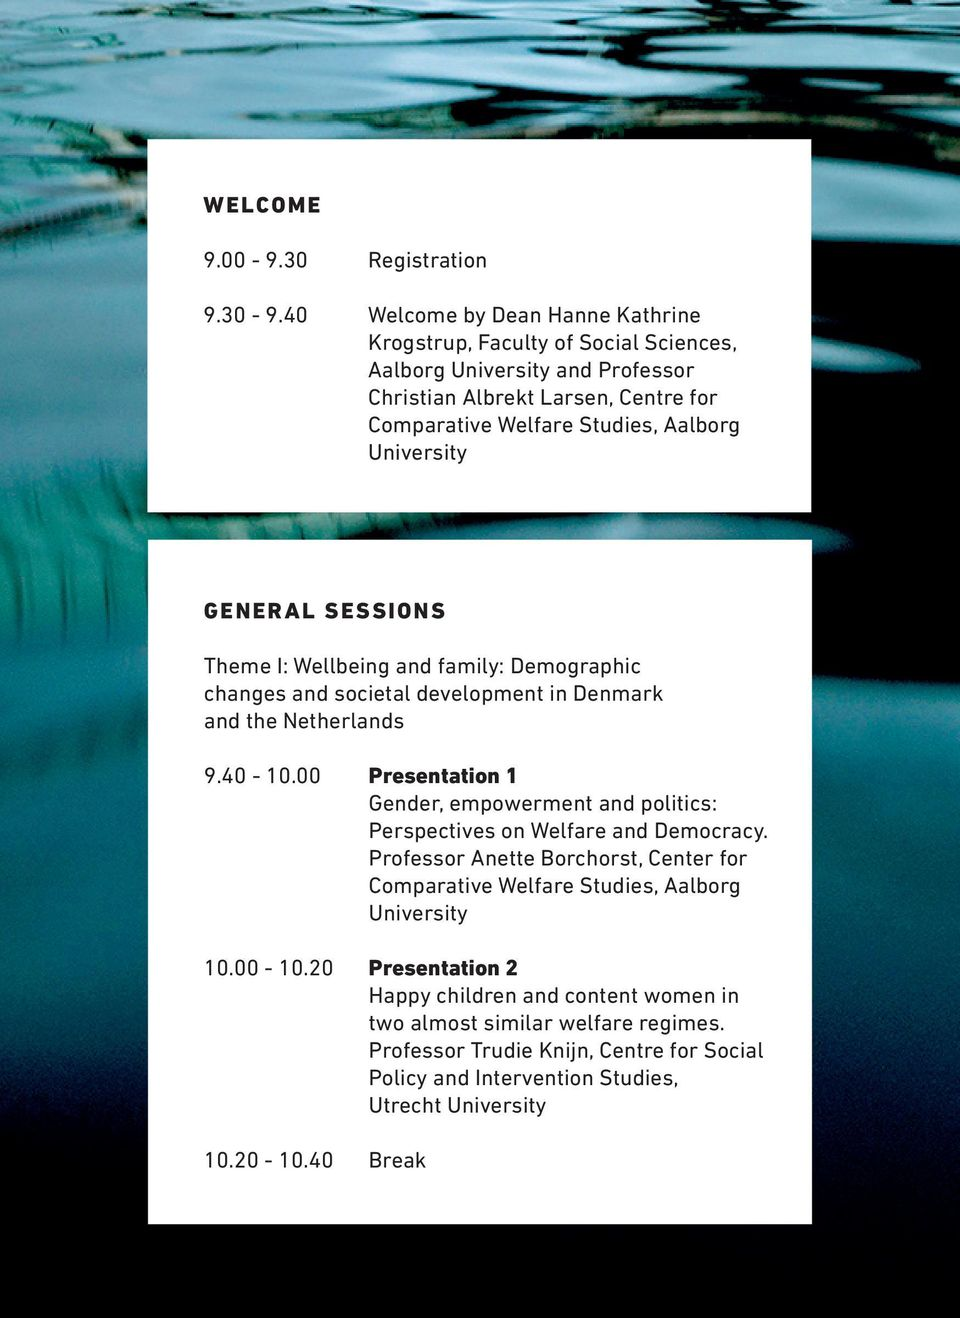 University GENERAL SESSIONS Theme I: Wellbeing and family: Demographic changes and societal development in Denmark and the Netherlands 9.40-10.